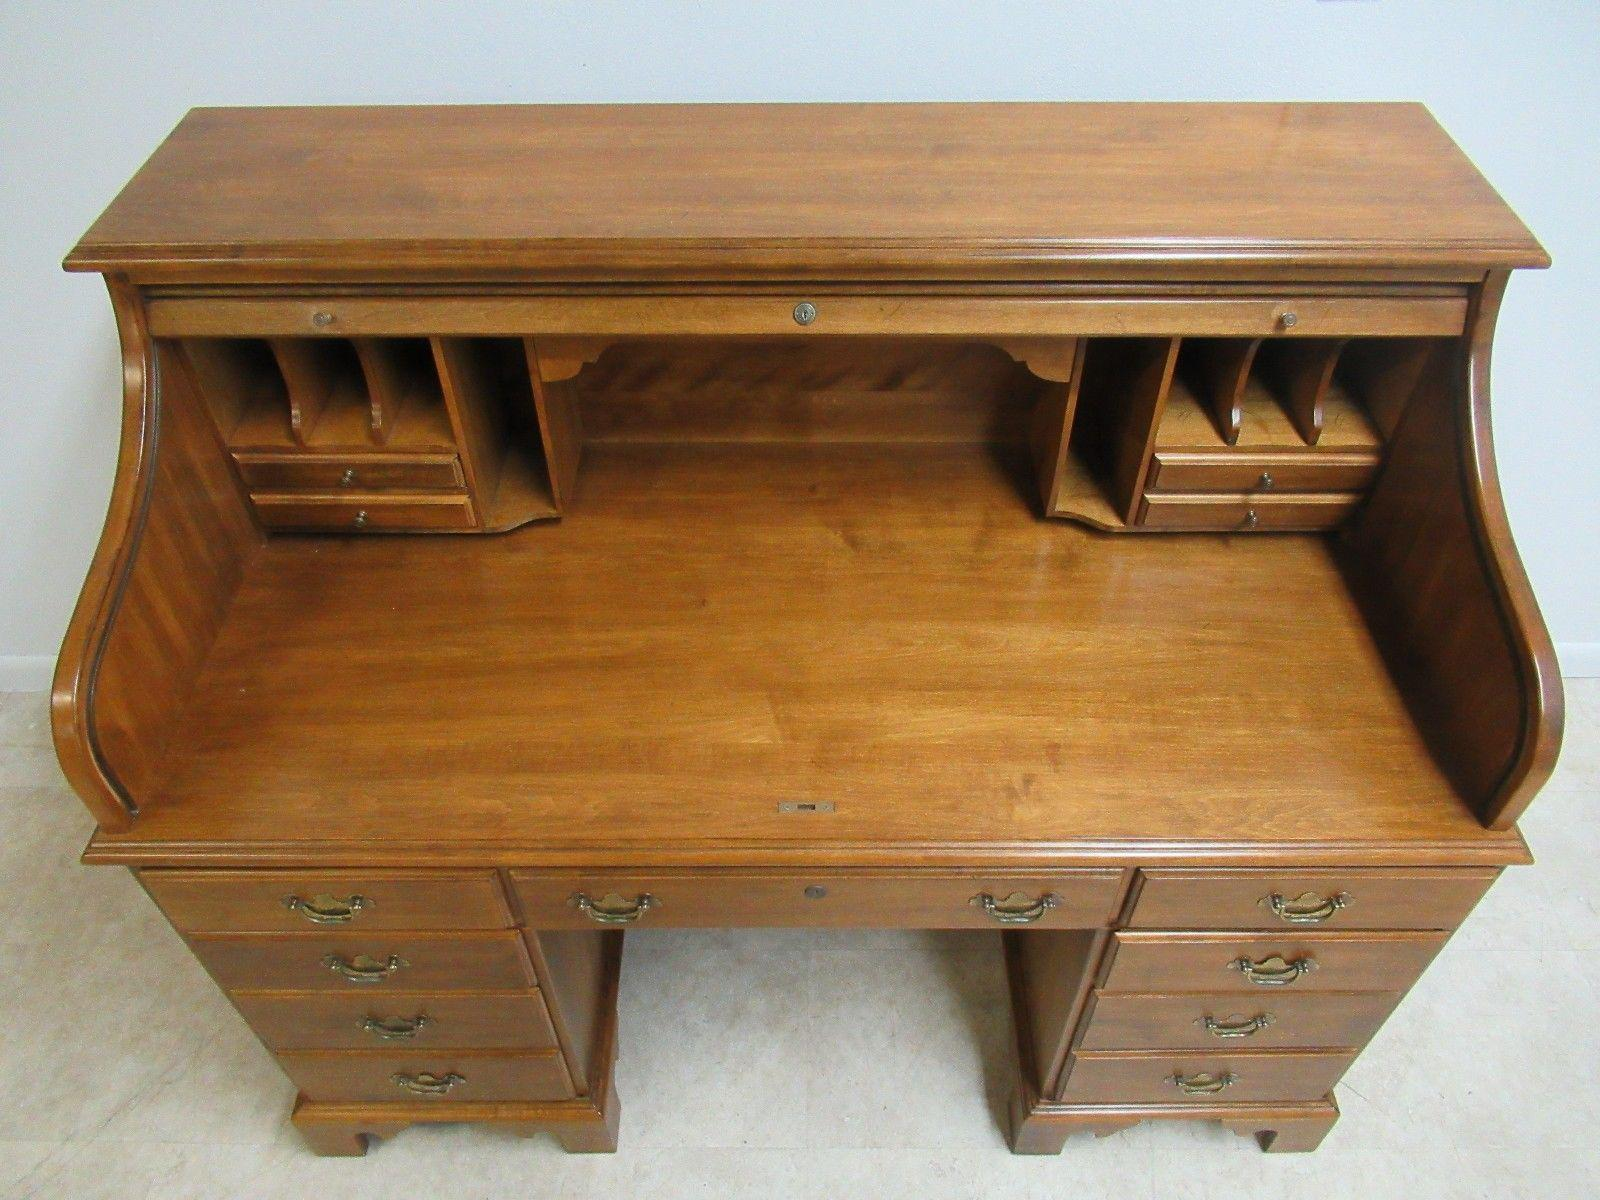 Ethan Allen Roll Top Writing Desk  Chairish. Barn Board Table. Target Round Dining Table. Kdk Desk Fan. Free Desk Chair. Crib Drawer. Glass Top Table. Desk Small. Japanese Desk Accessories